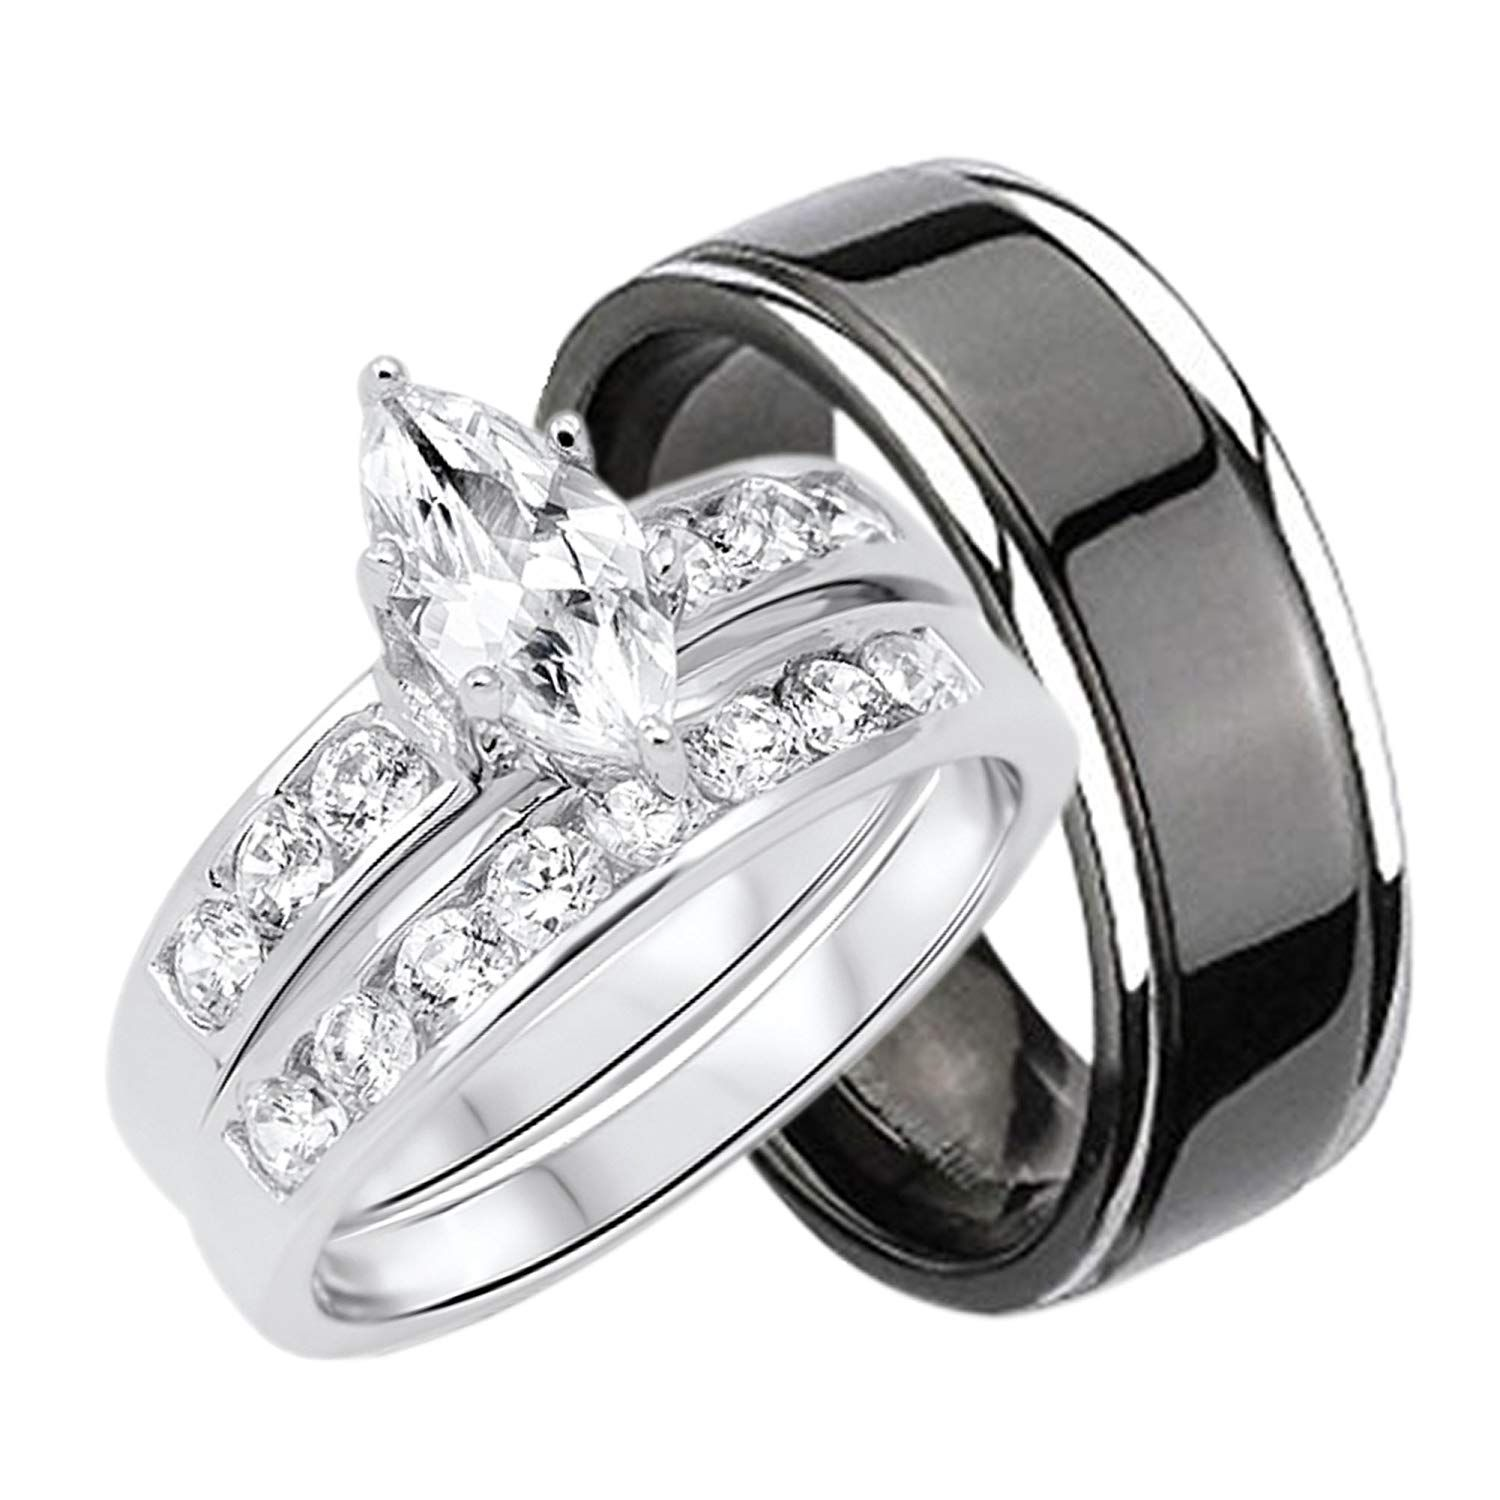 23+ Wedding ring ideas for her ideas